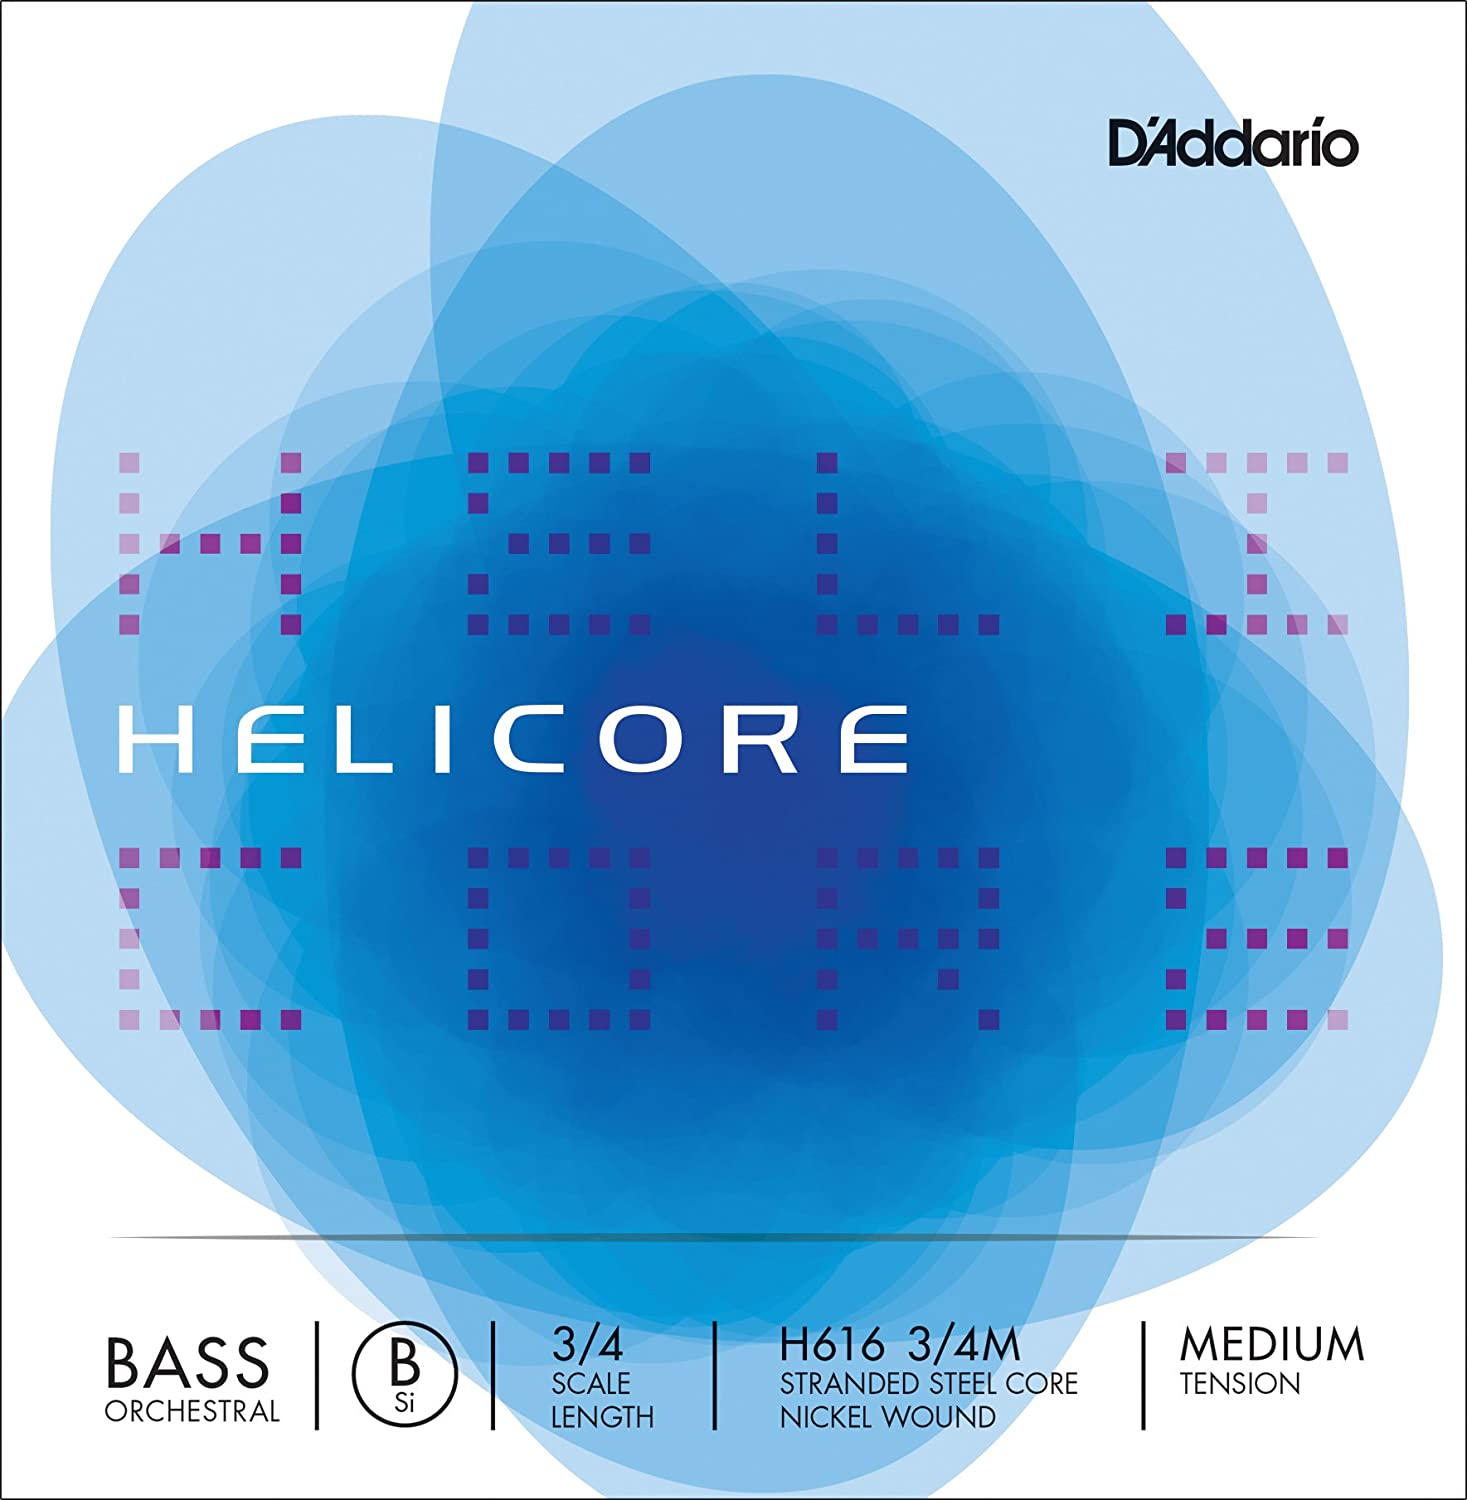 D'Addario Helicore Orchestral Bass Single Low B String, 3/4 Scale, Medium Tension D' Addario H616 3/4M